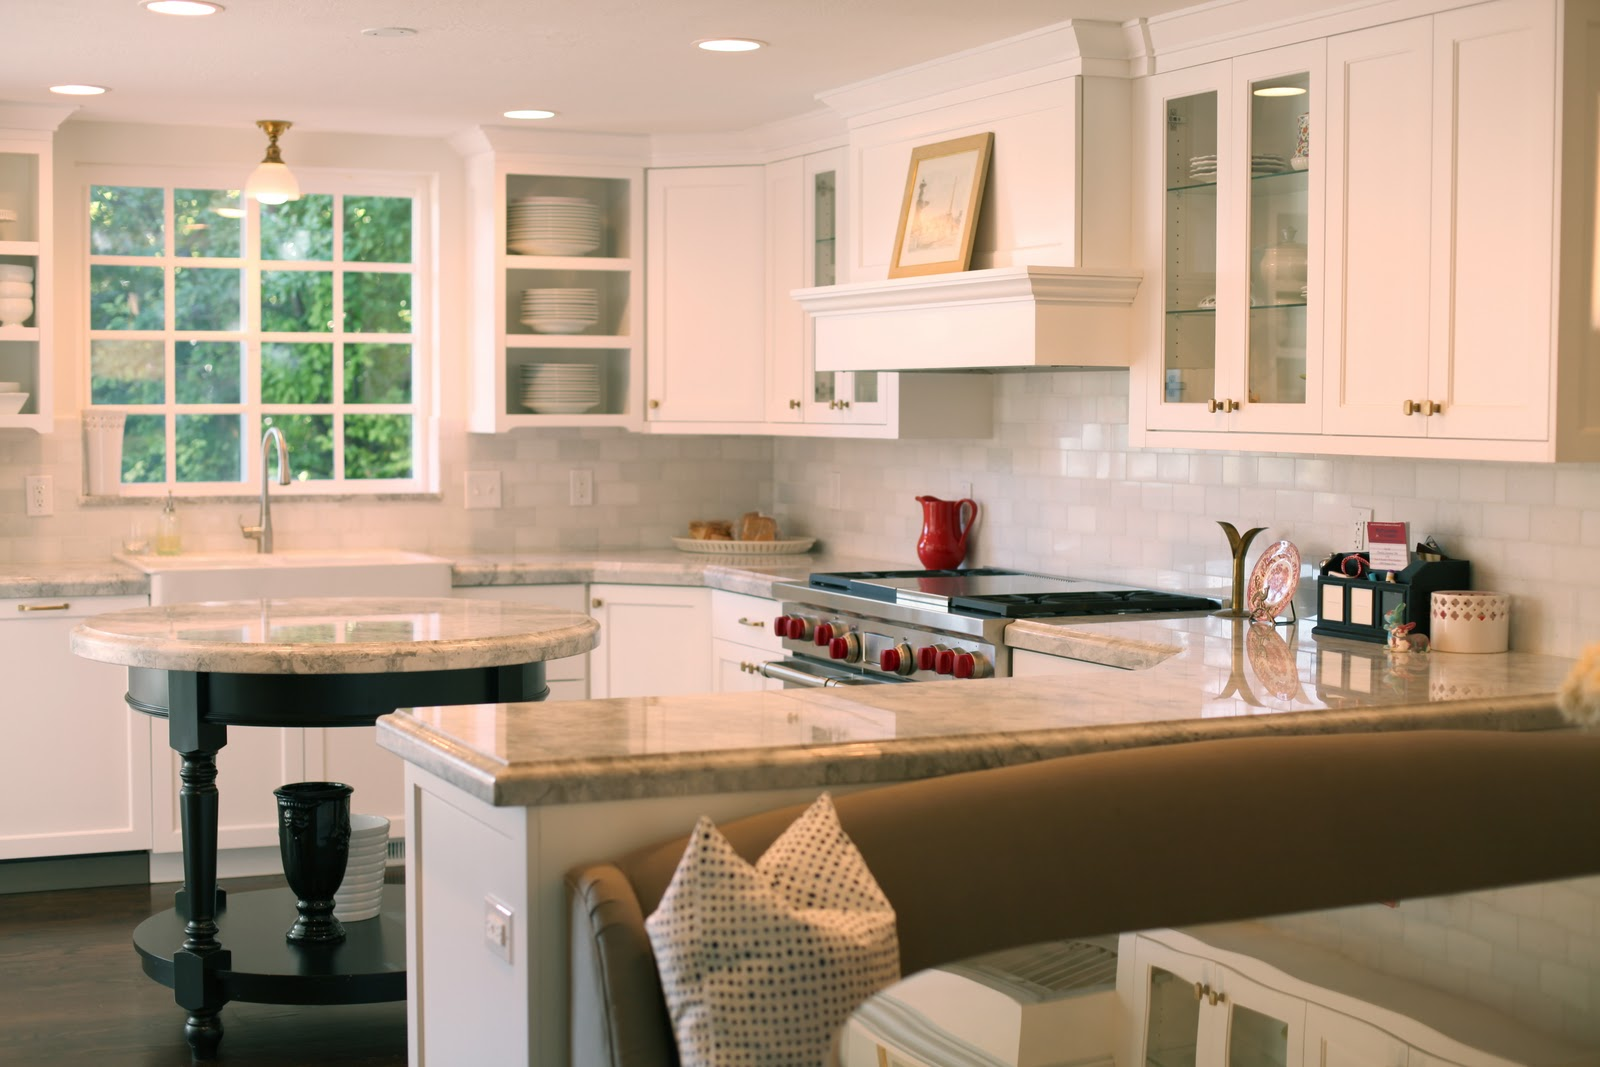 Bench Seating For Kitchen Stainless Steel Doors Outdoor White 43 Gold Family Room And Bath Pics Of Our Home